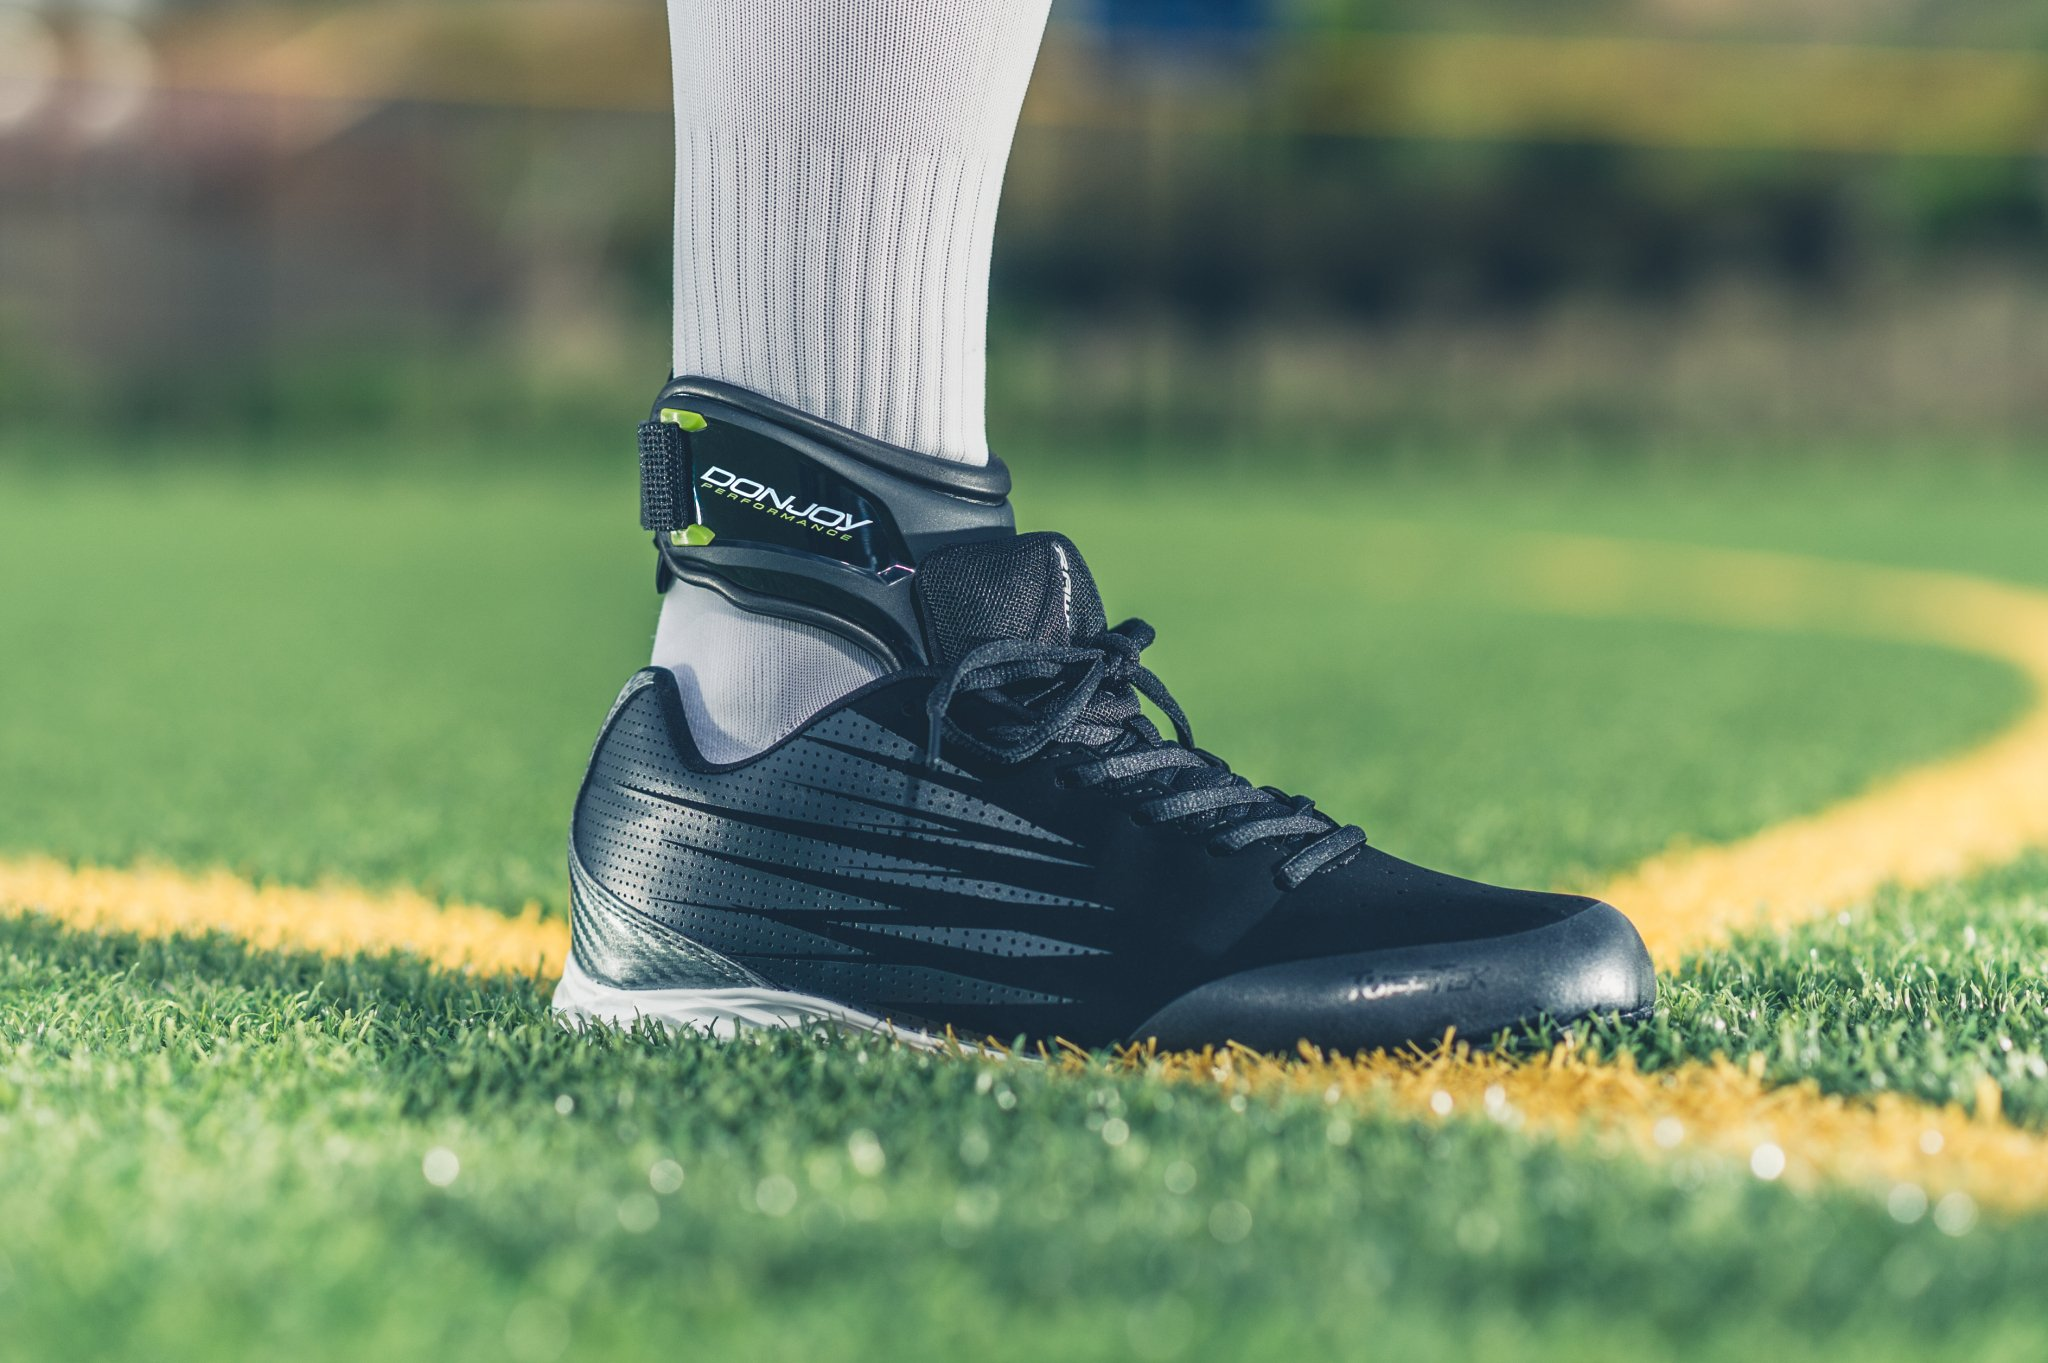 DonJoy Performance POD Ankle Brace, Best Support for Stability, Ankle Sprain, Roll, Strains for Football, Soccer, Basketball, Lacrosse, Volleyball -Medium- Right - Black by DonJoy Performance (Image #11)